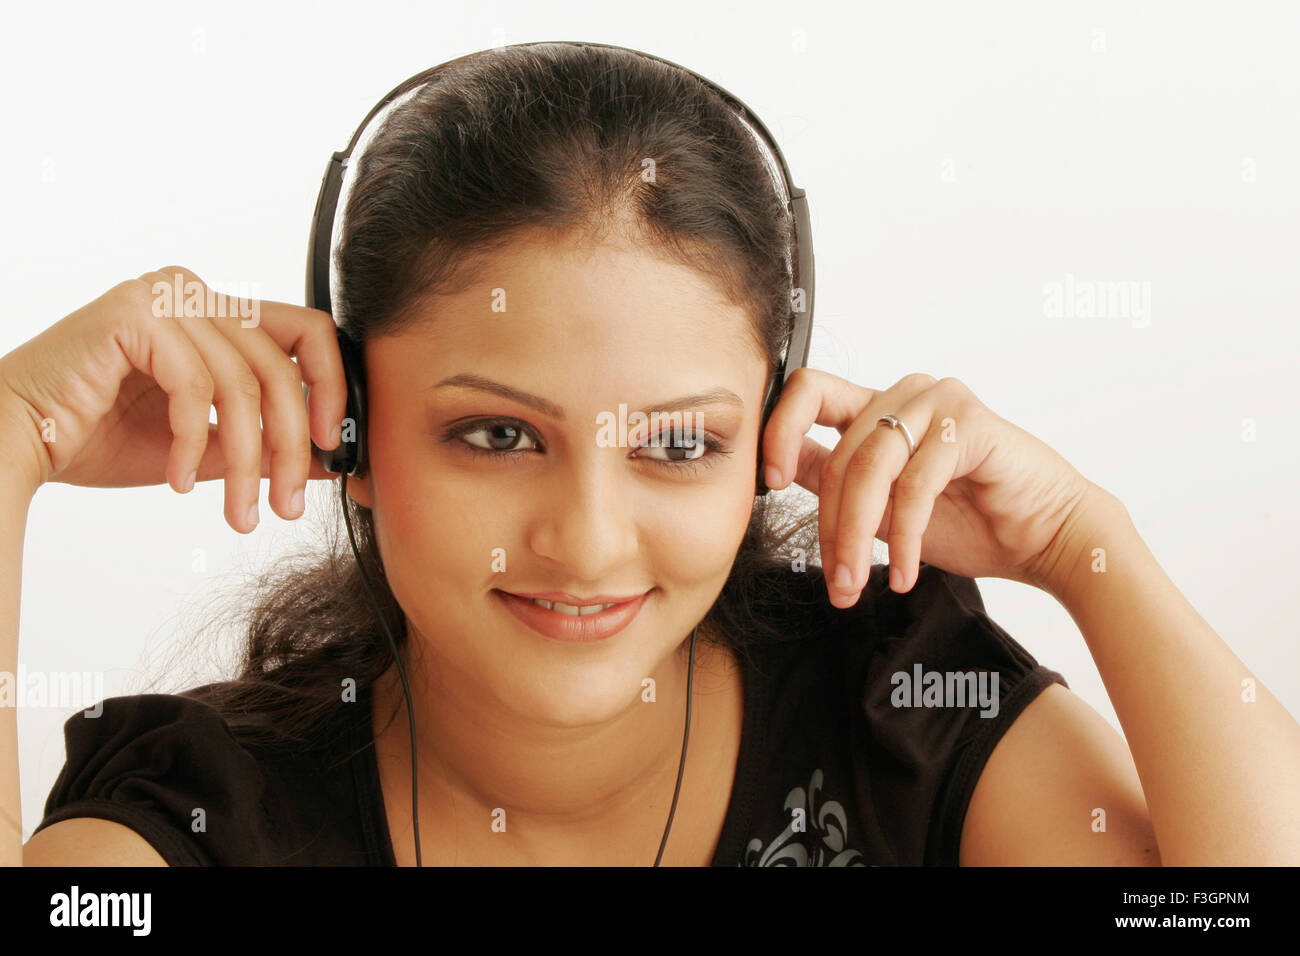 Maharashtrian teenage girl engrossed in listening to music using earphones MR#686M - Stock Image